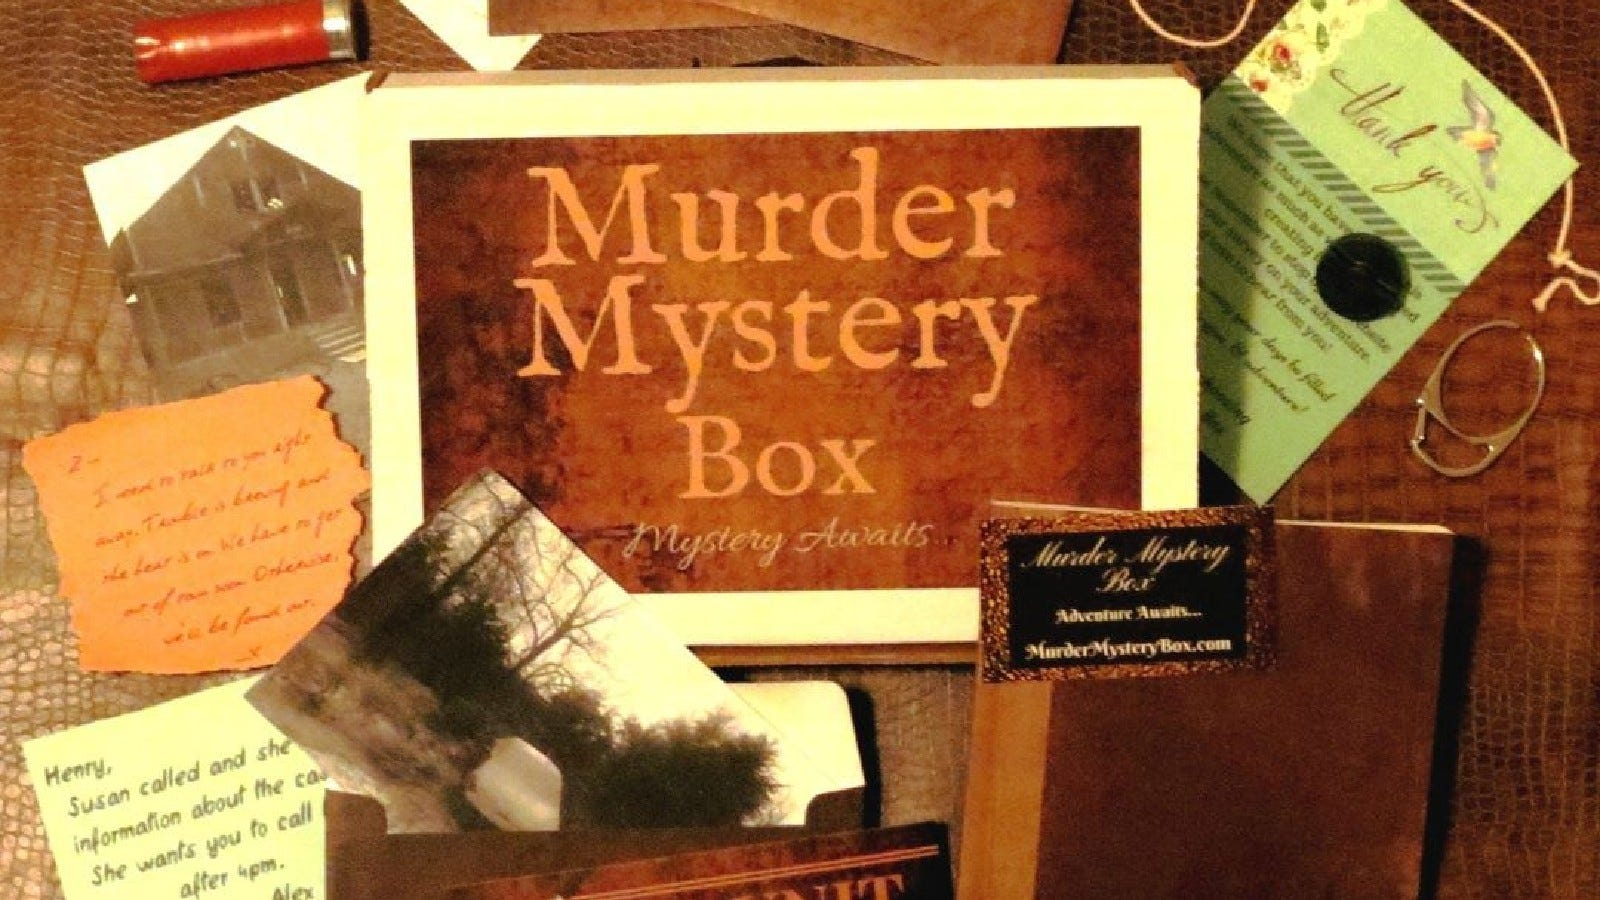 Contents of a Murder Mystery Box.